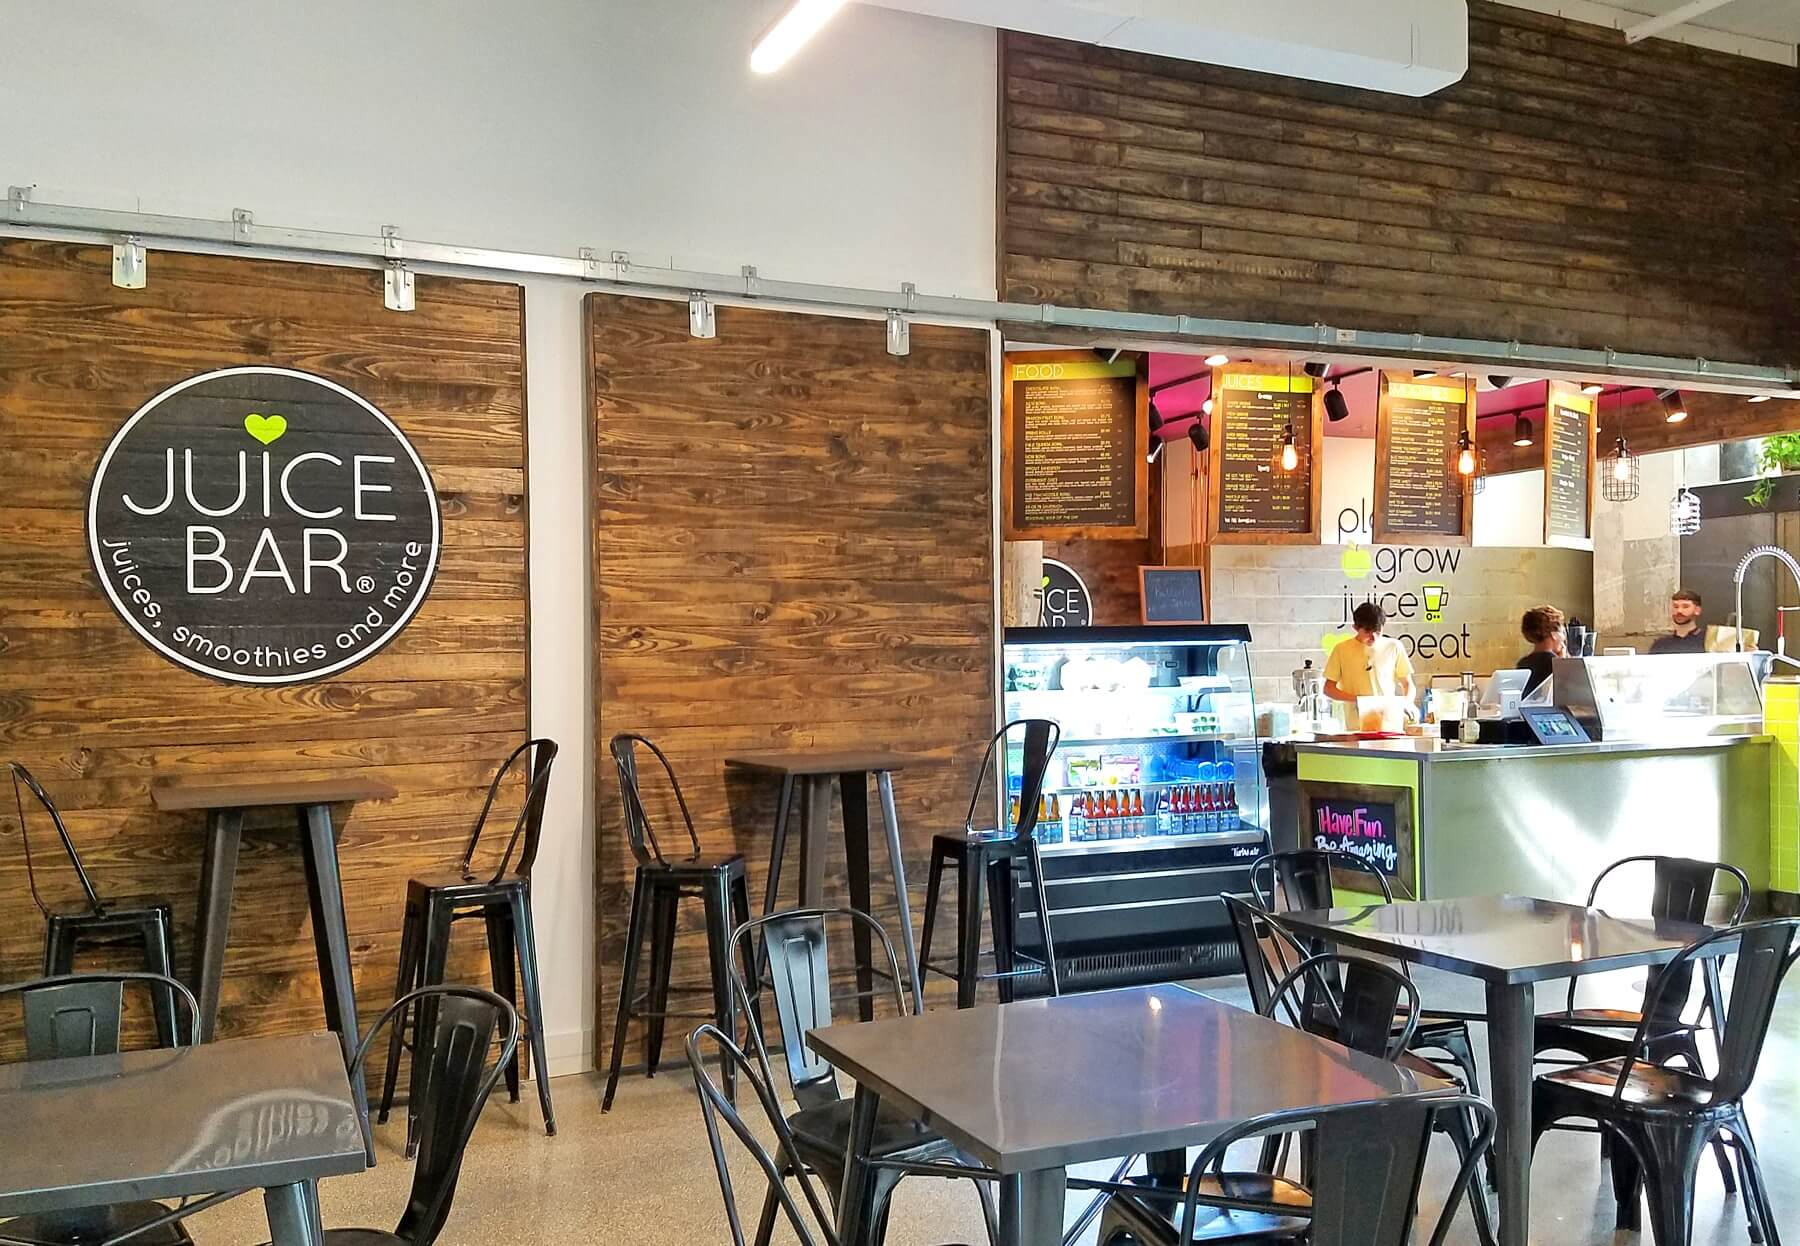 Crosstown Concourse — In keeping with the healthy theme of Crosstown, I Love Juice Bar is a proud tenant of the development.